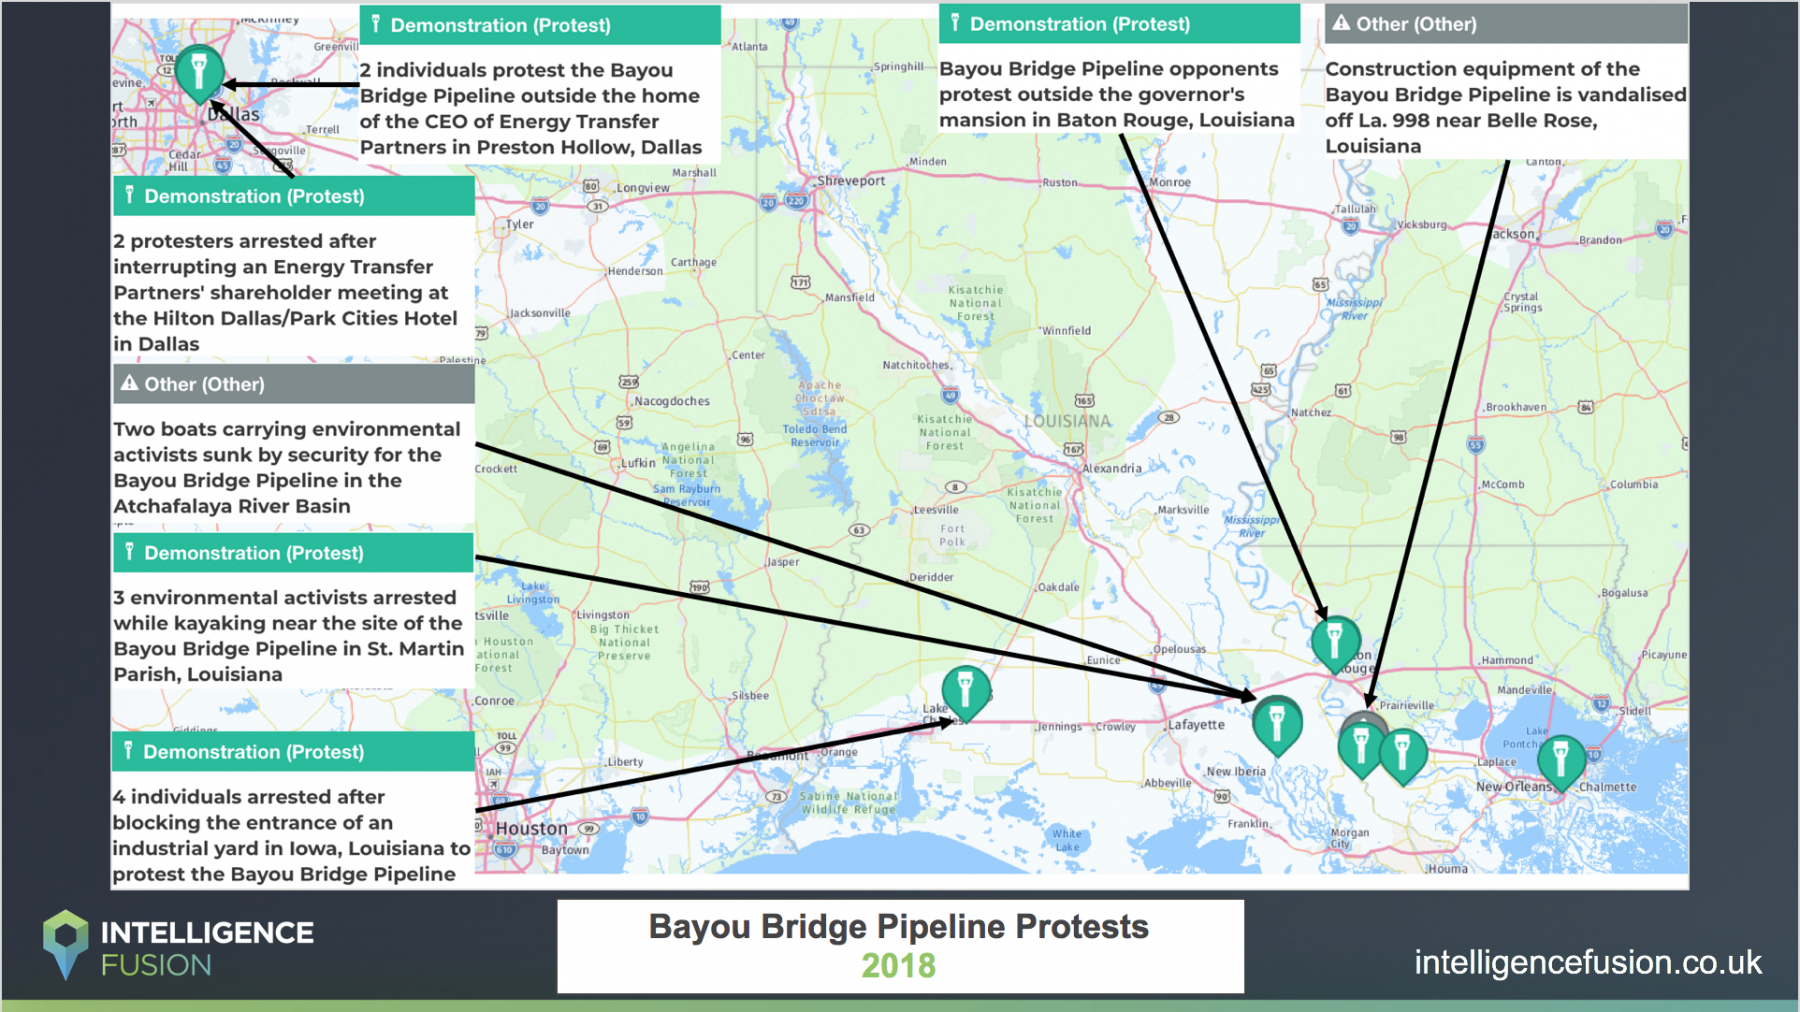 A PICINTSUM that outlines the demonstrations and protests at Bayou Bridge in Louisiana throughout 2018